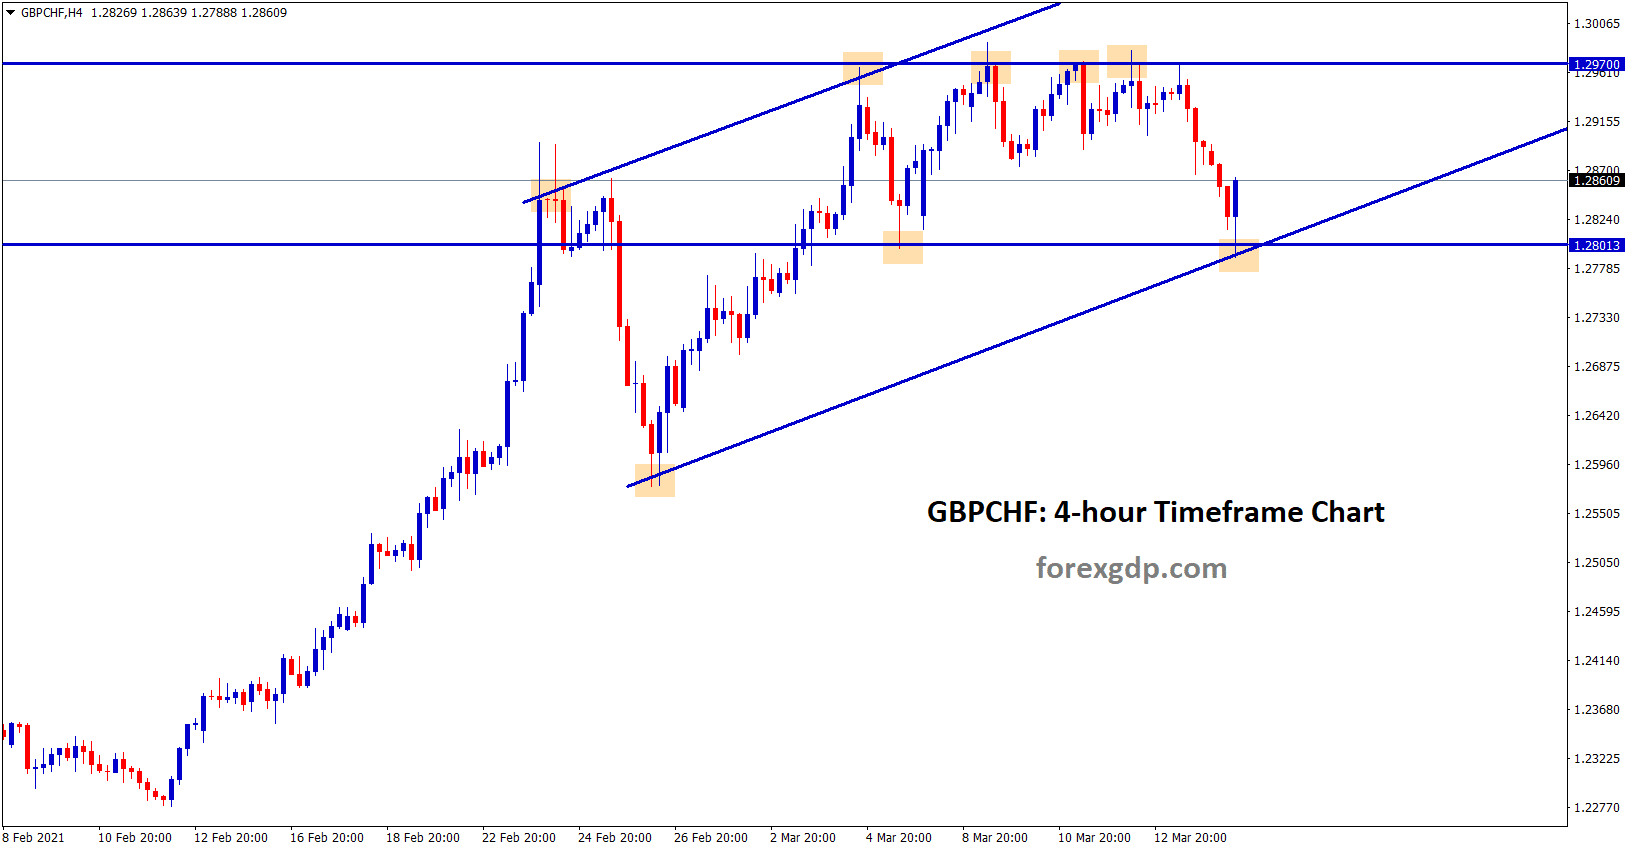 gbpchf uptrend move in h4